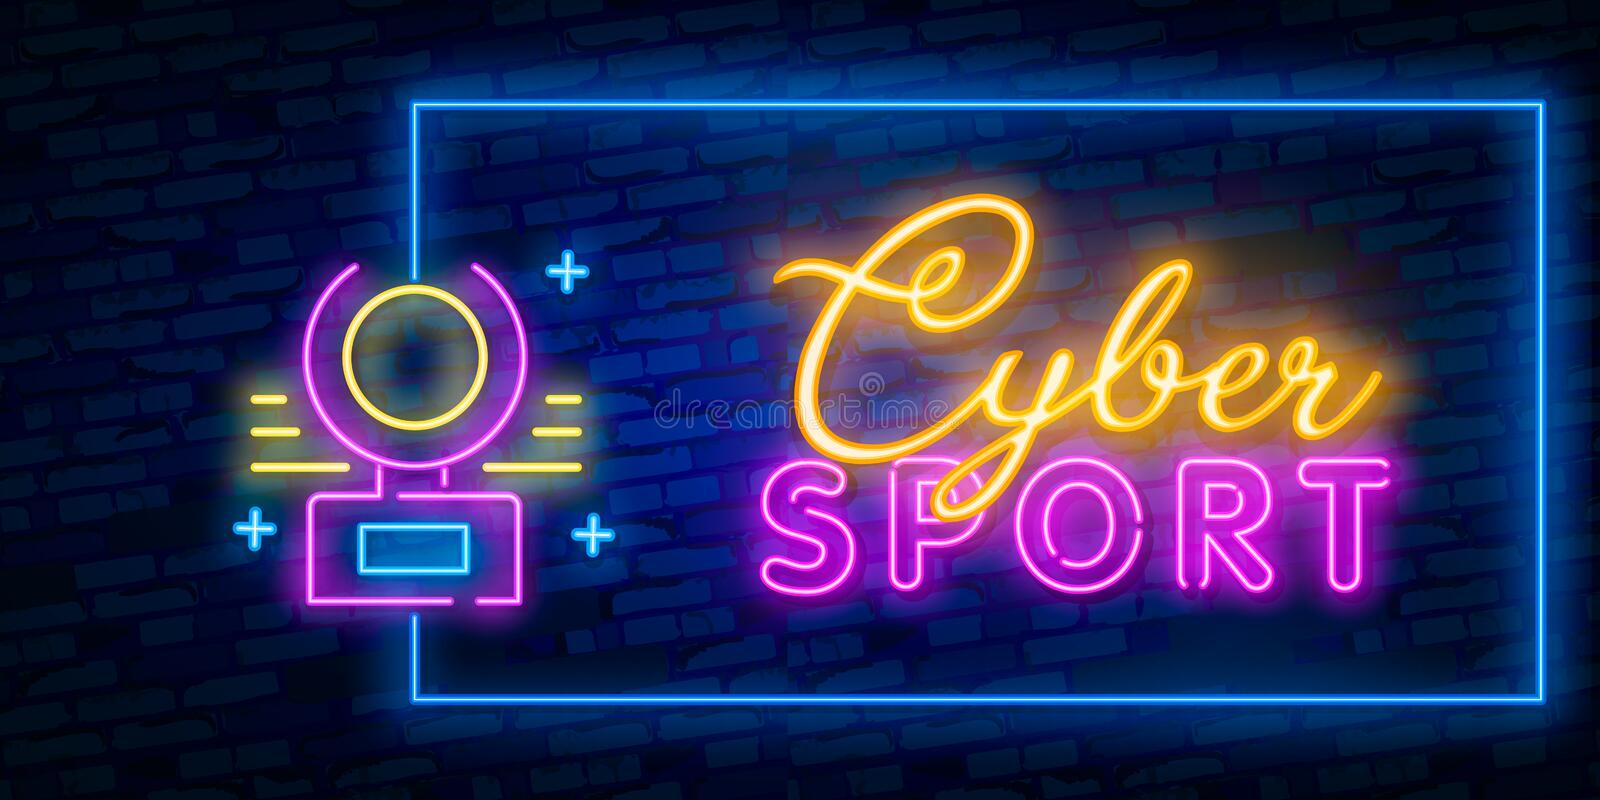 Cyber Sport Neon Text Vector. Gaming neon sign, design template, modern trend design, night signboard, night bright advertising, royalty free illustration